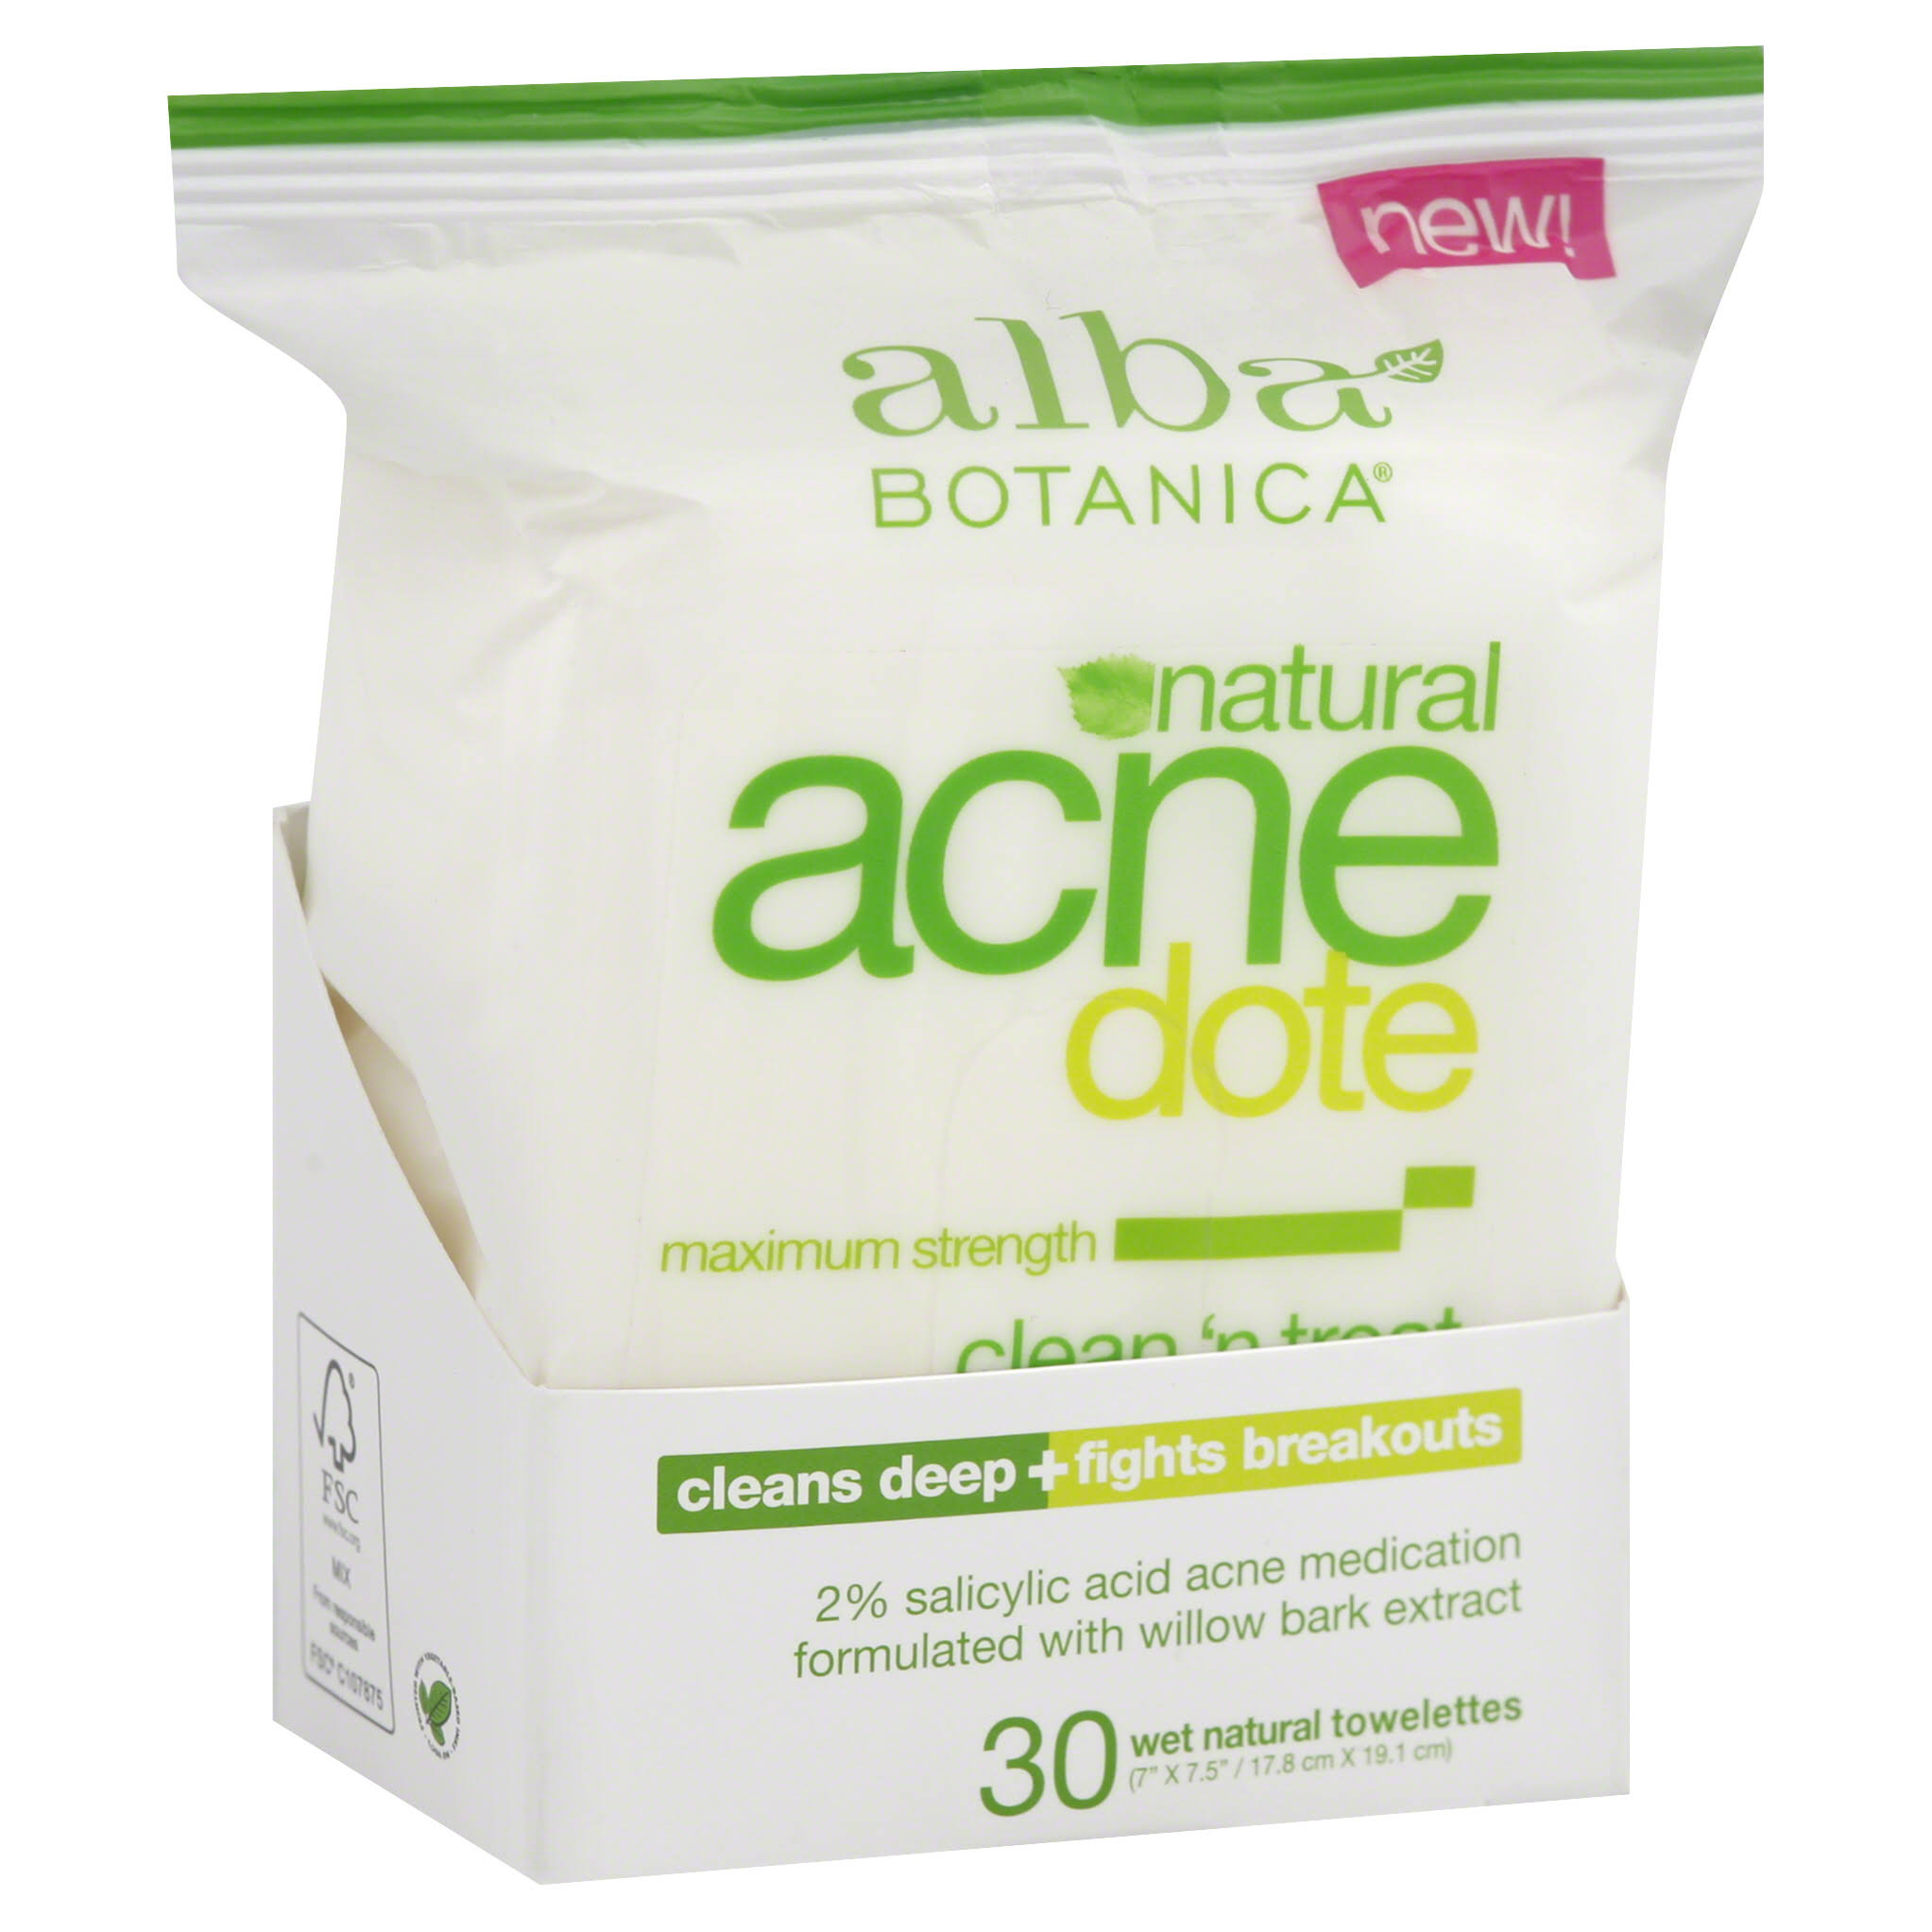 Alba Botanica Acne Dote Clean 'n Treat Daily Cleansing Wet Towelettes - 30 Pack